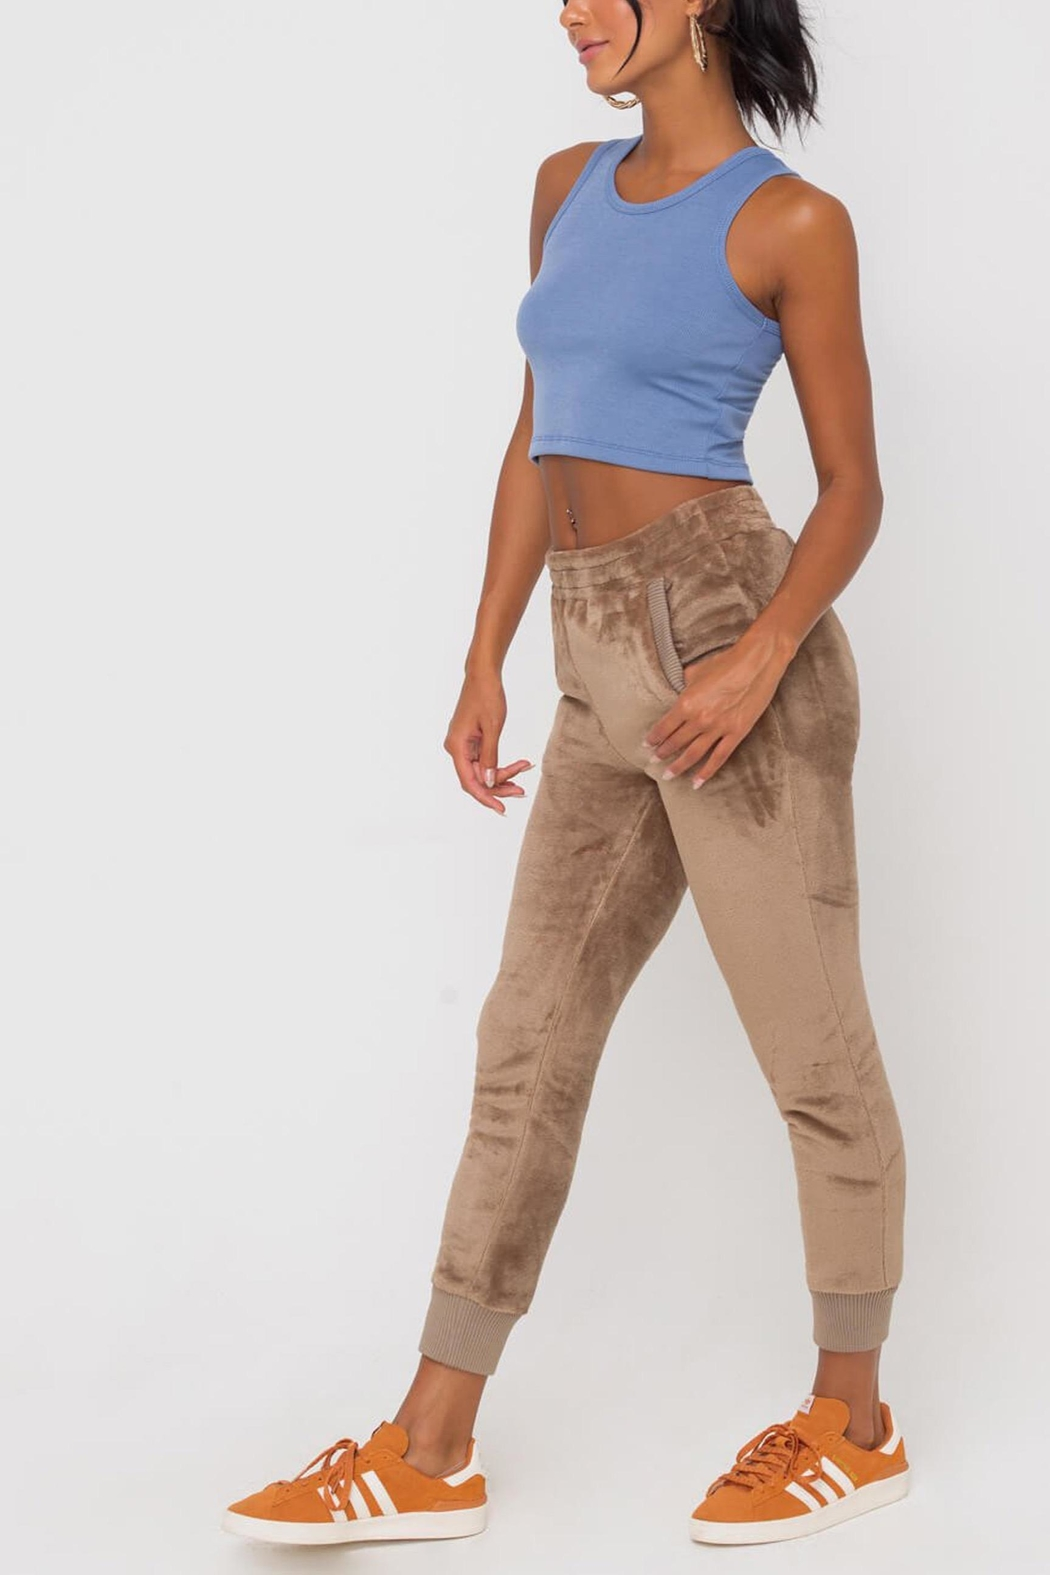 Lush Clothing  Faux-Fur Cuffed Jogger-Pants - Front Full Image